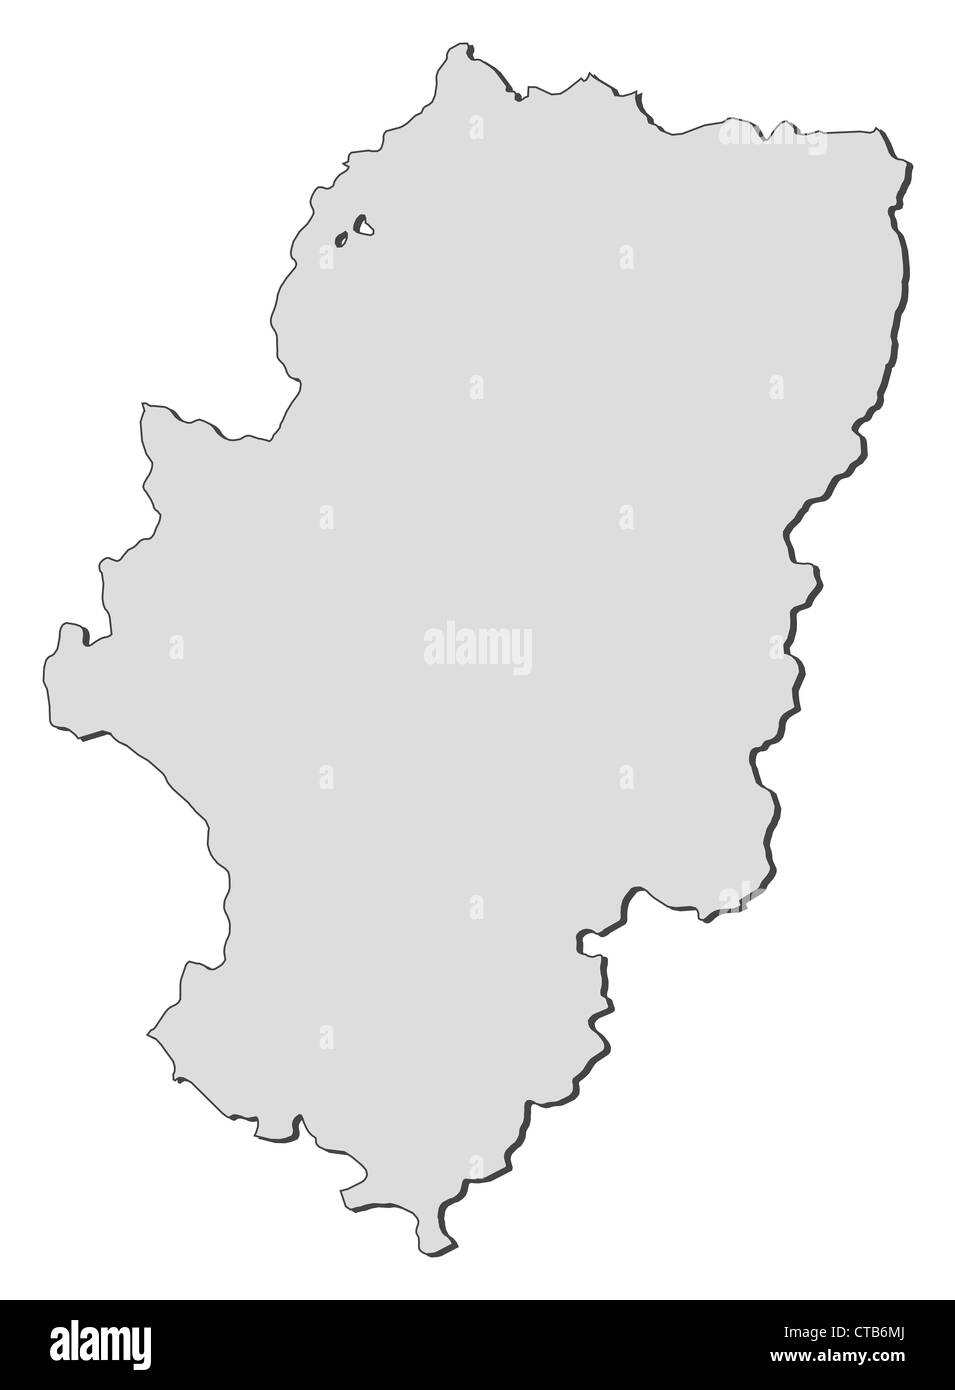 Map of Aragon, a region of Spain. - Stock Image